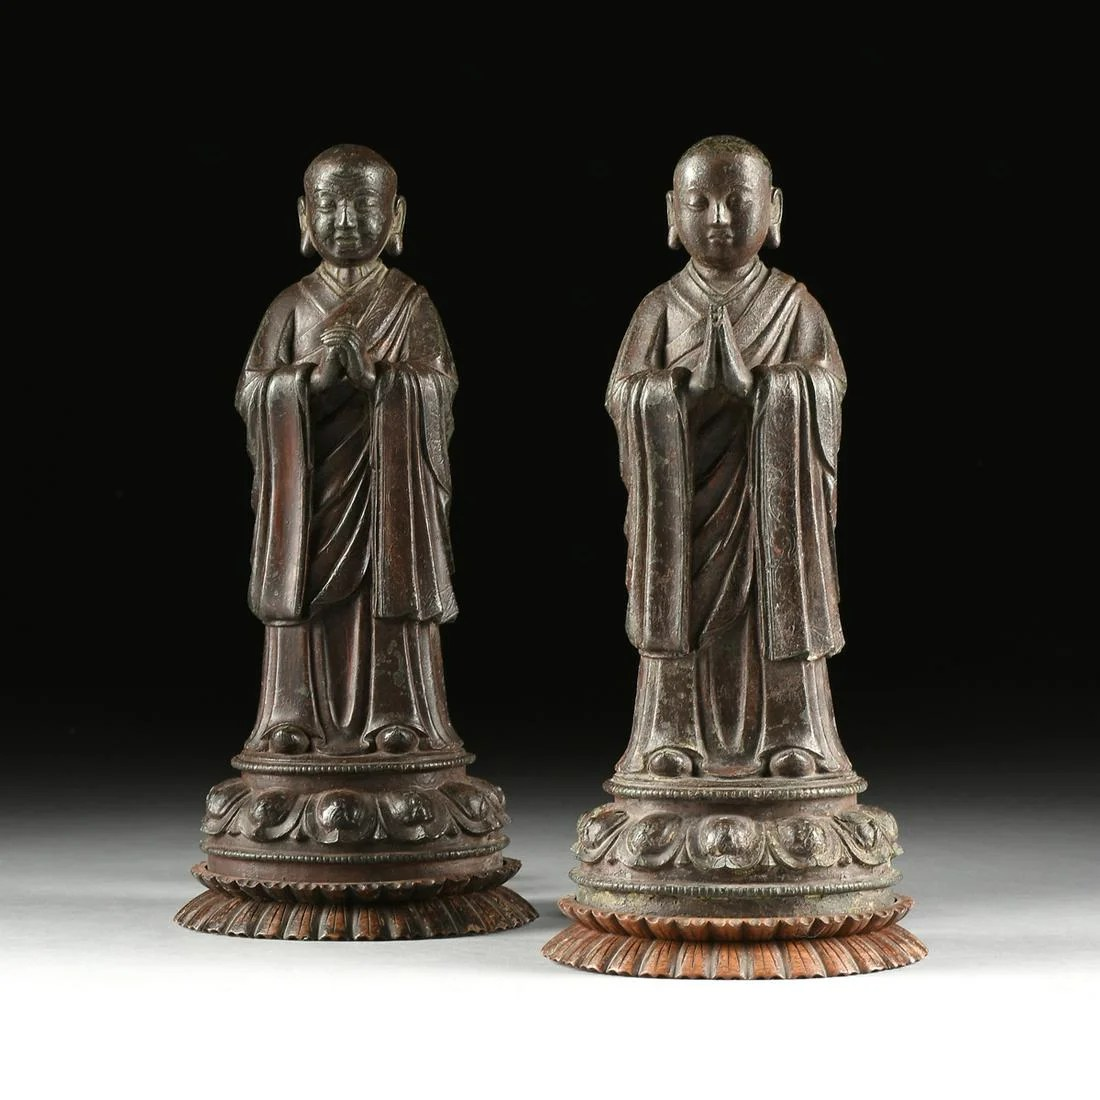 A PAIR OF MING DYNASTY STYLE ENAMELED BRONZE DISCIPLES